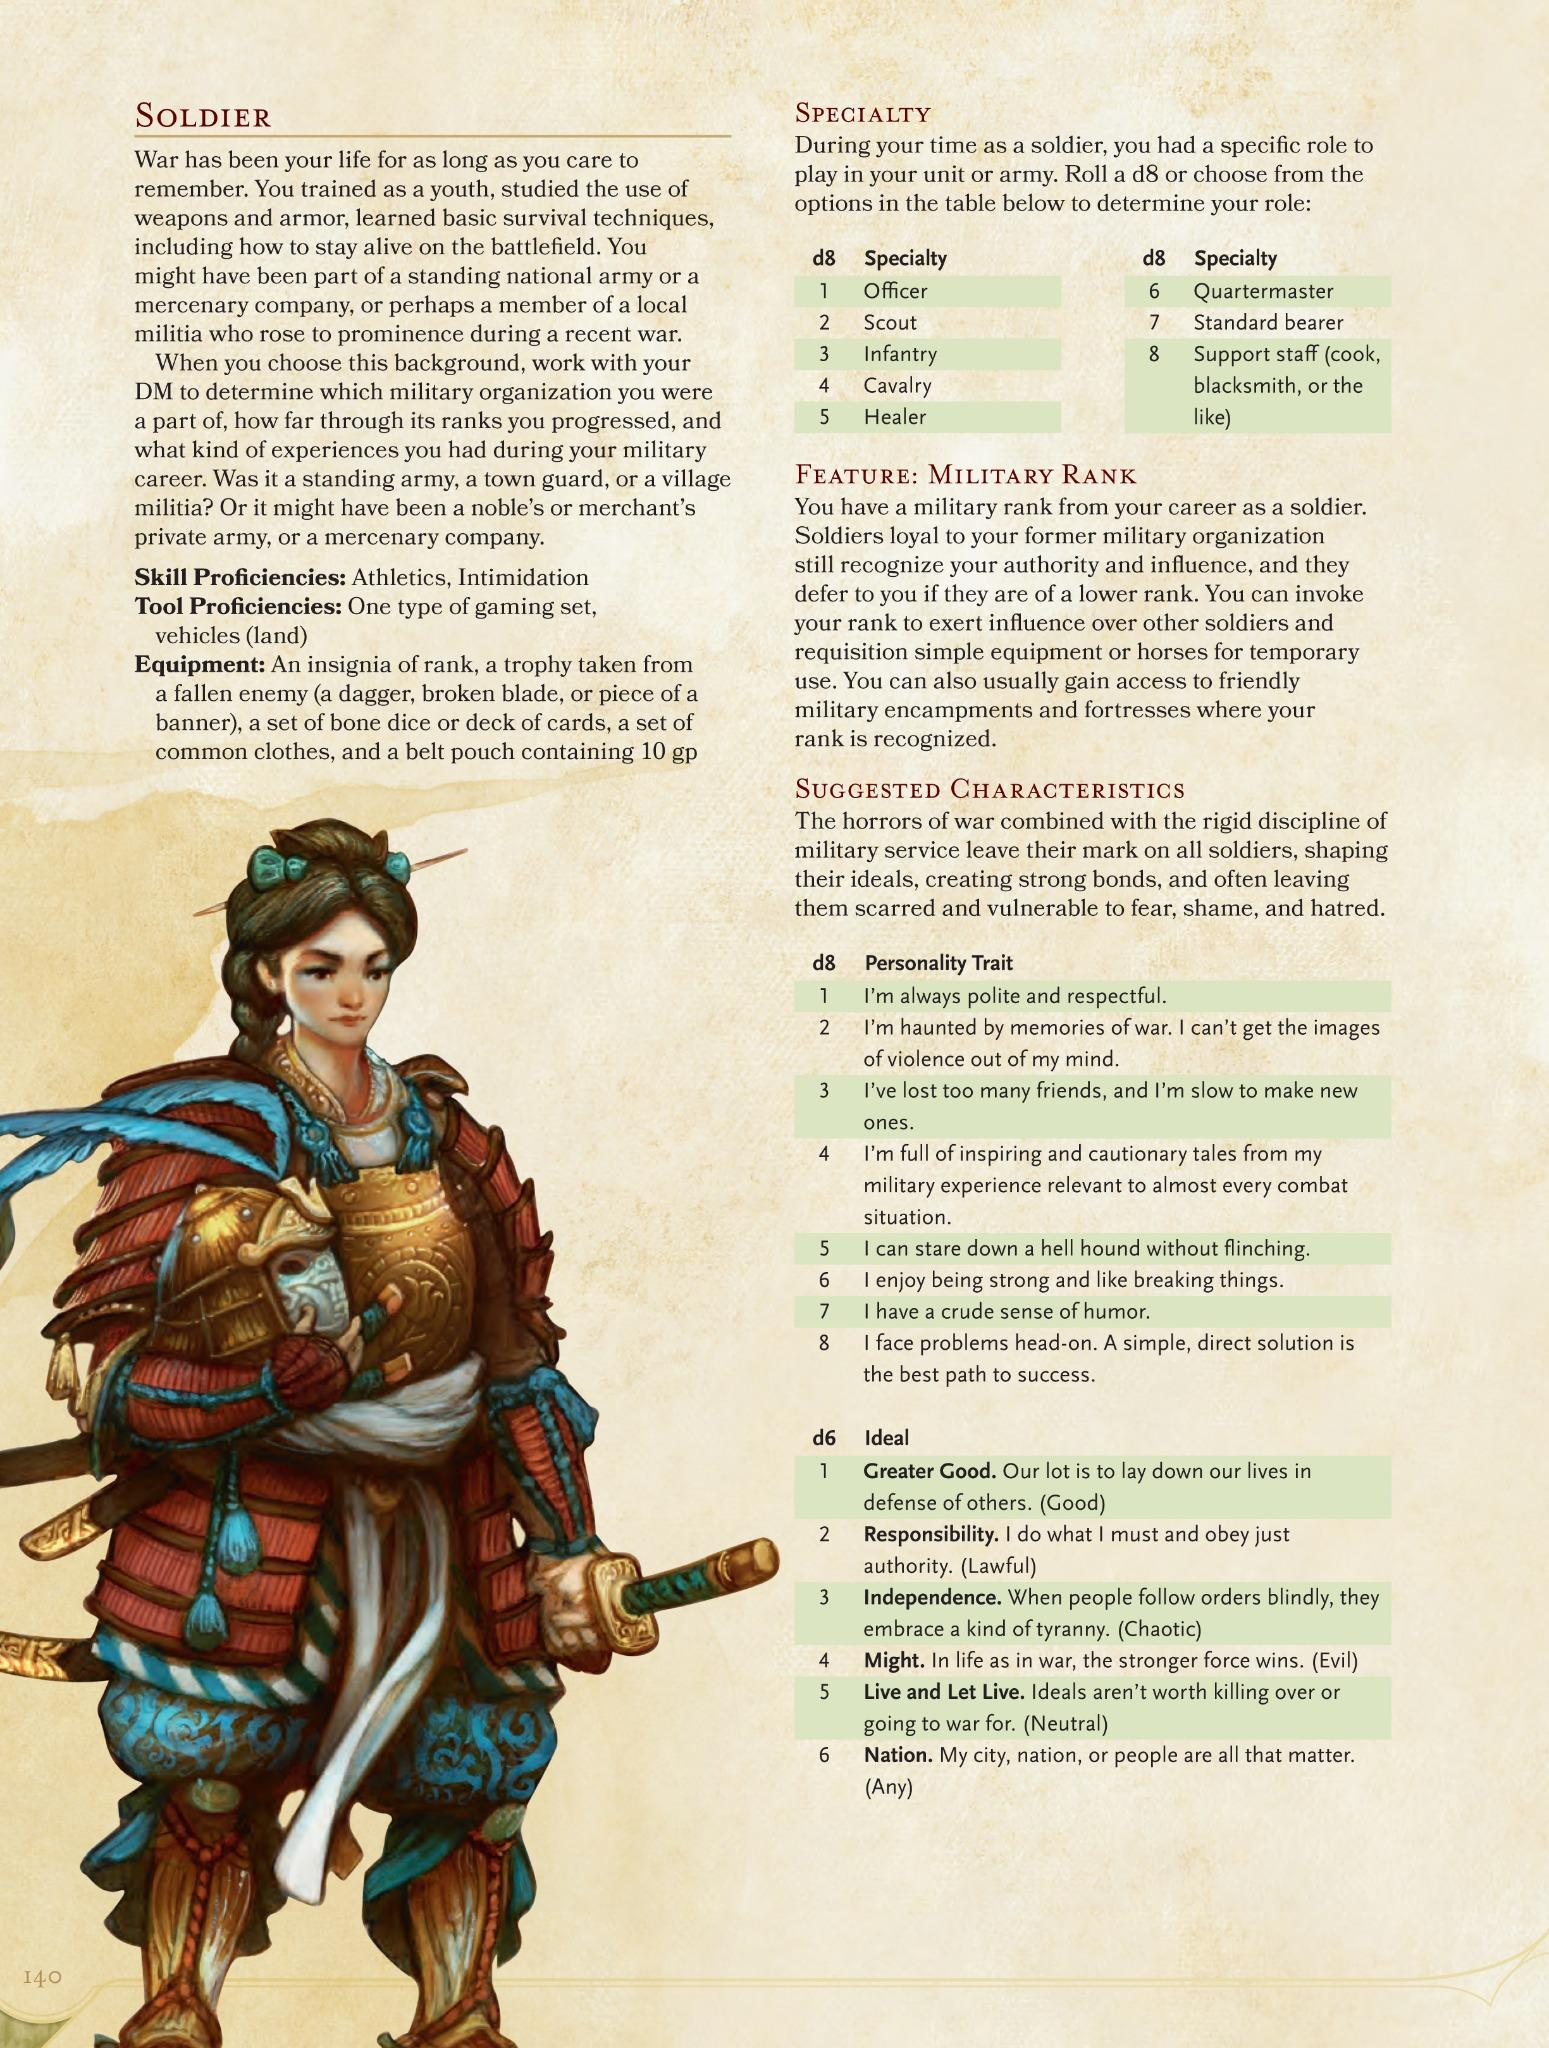 You may recognize the soldier background in today's #dnd Player's Handbook preview, now with some nifty art! http://t.co/ikbaxe5ERl